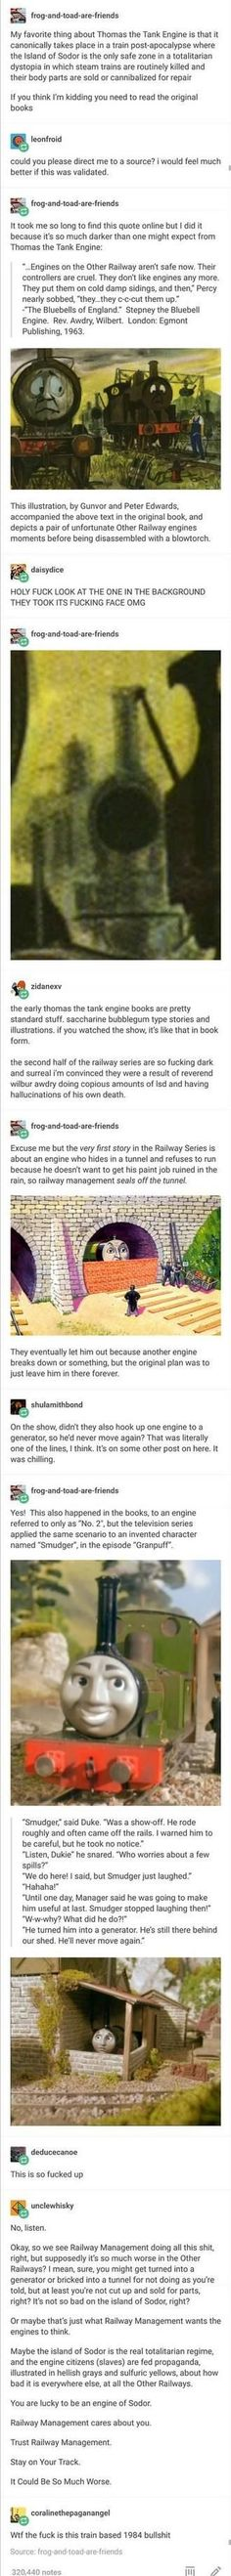 Dark train of thought - Imgur